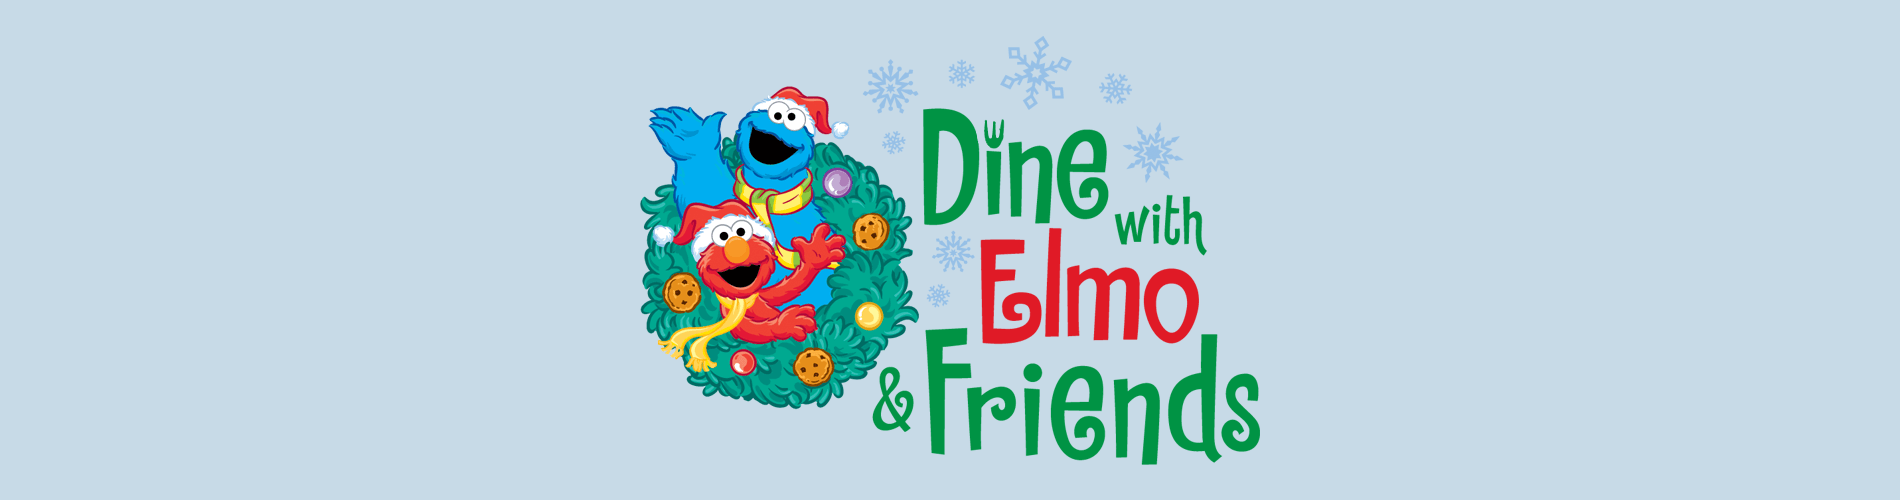 Christmas Town Dine with Elmo and Friends